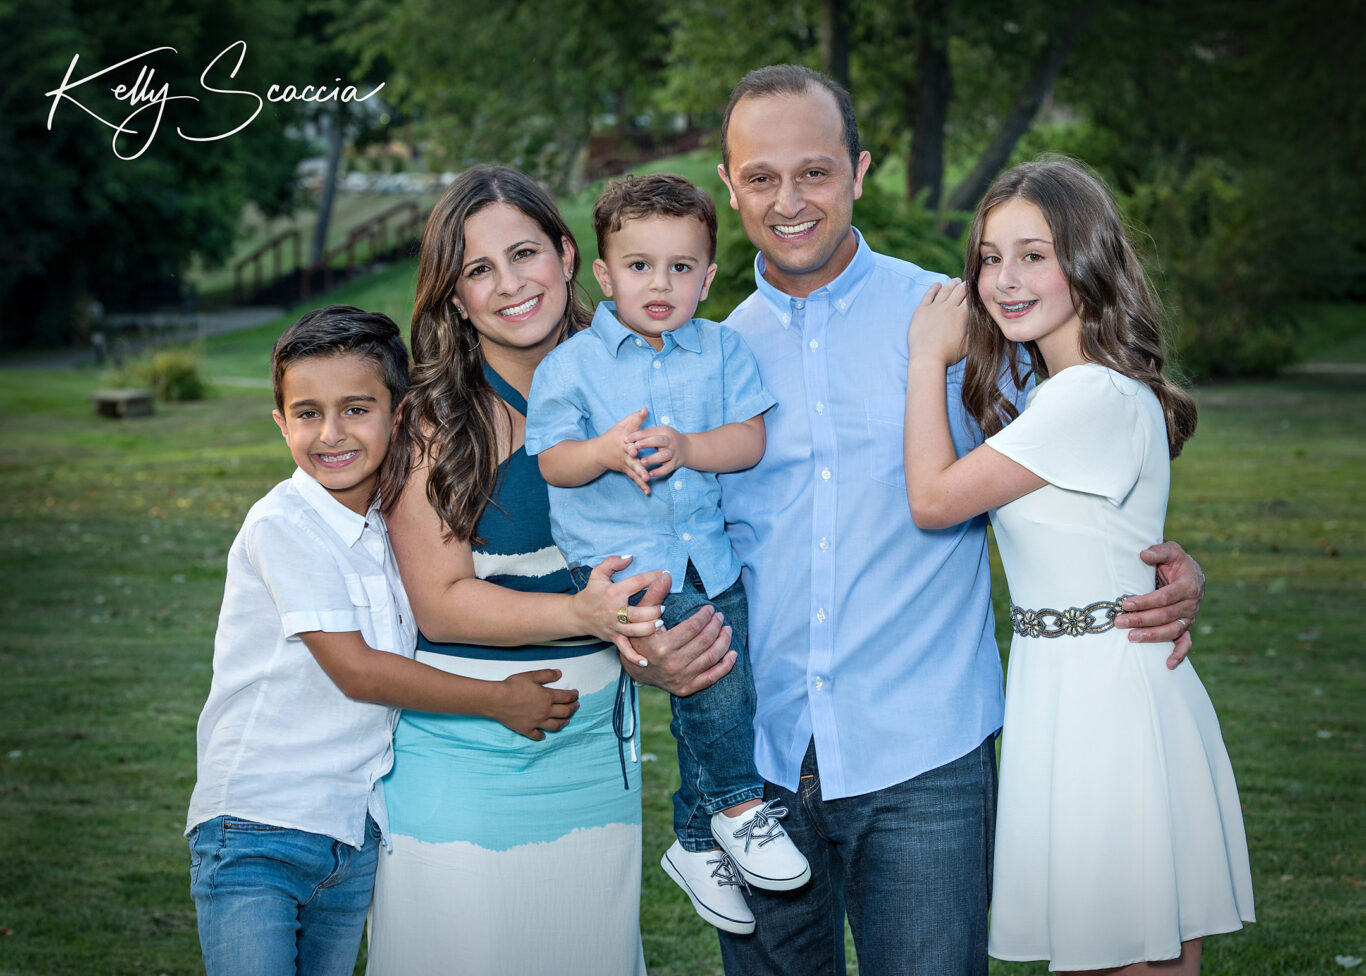 Outdoor family portrait in the park wearing blues and whites and smiling